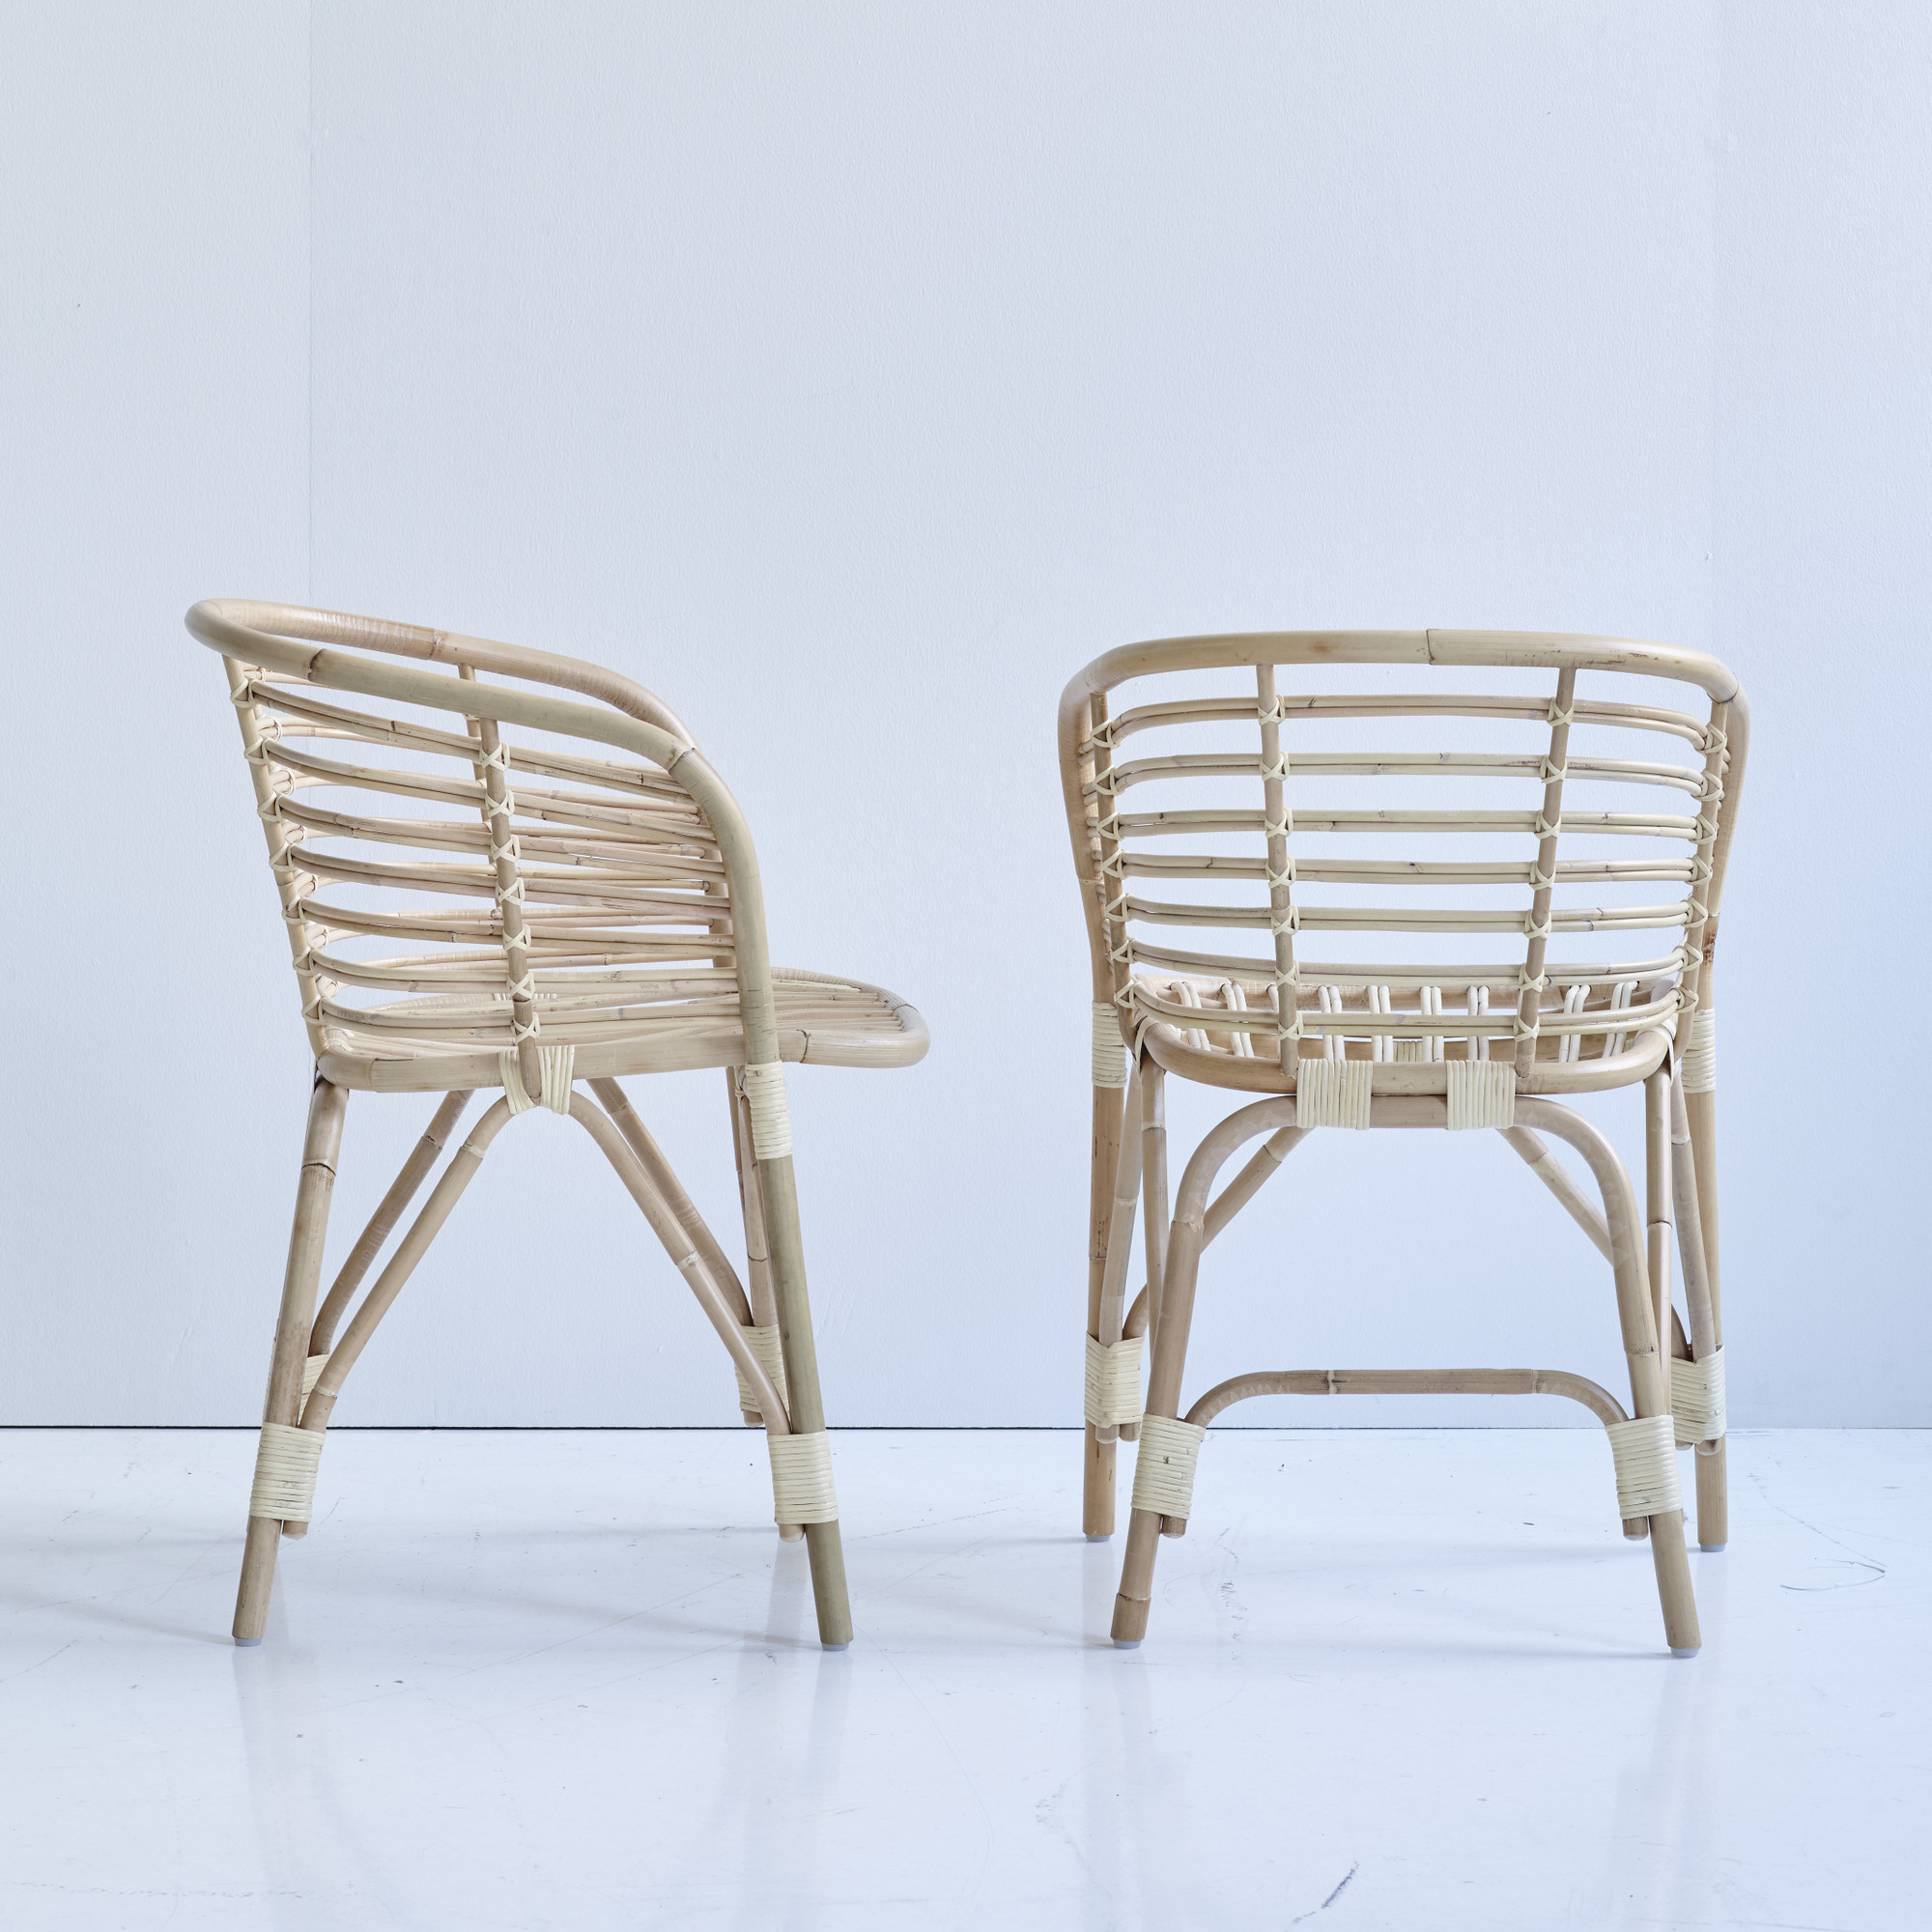 Furniture Unique Rattan Chair For Indoor Or Outdoor Furniture Ideas